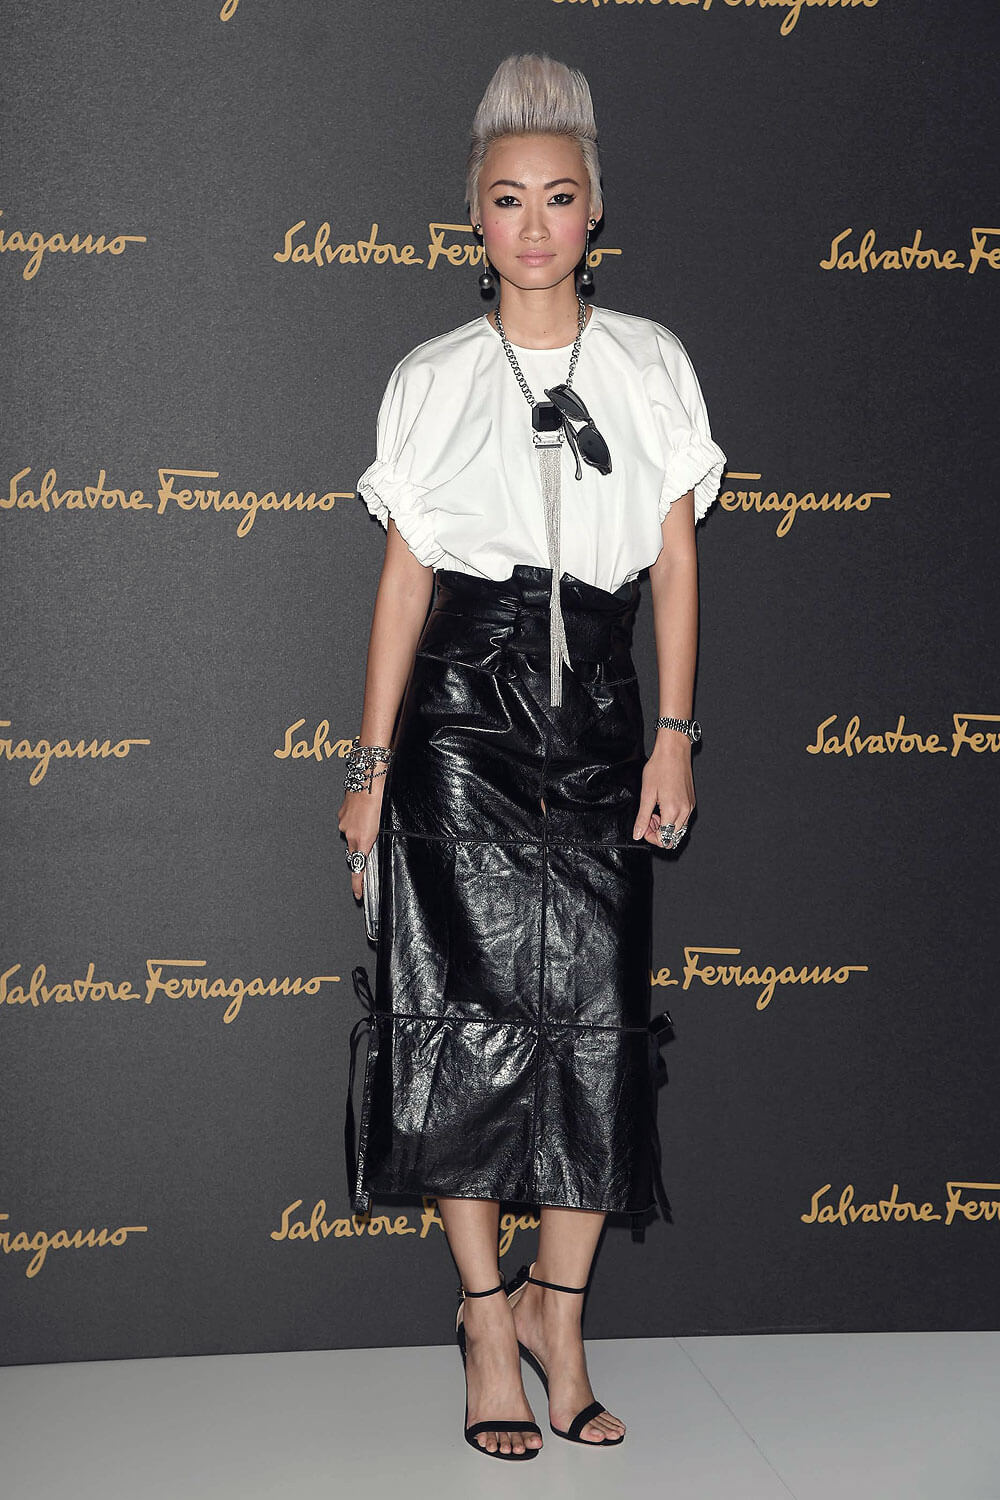 Ester Quek arrives at the Salvatore Ferragamo show